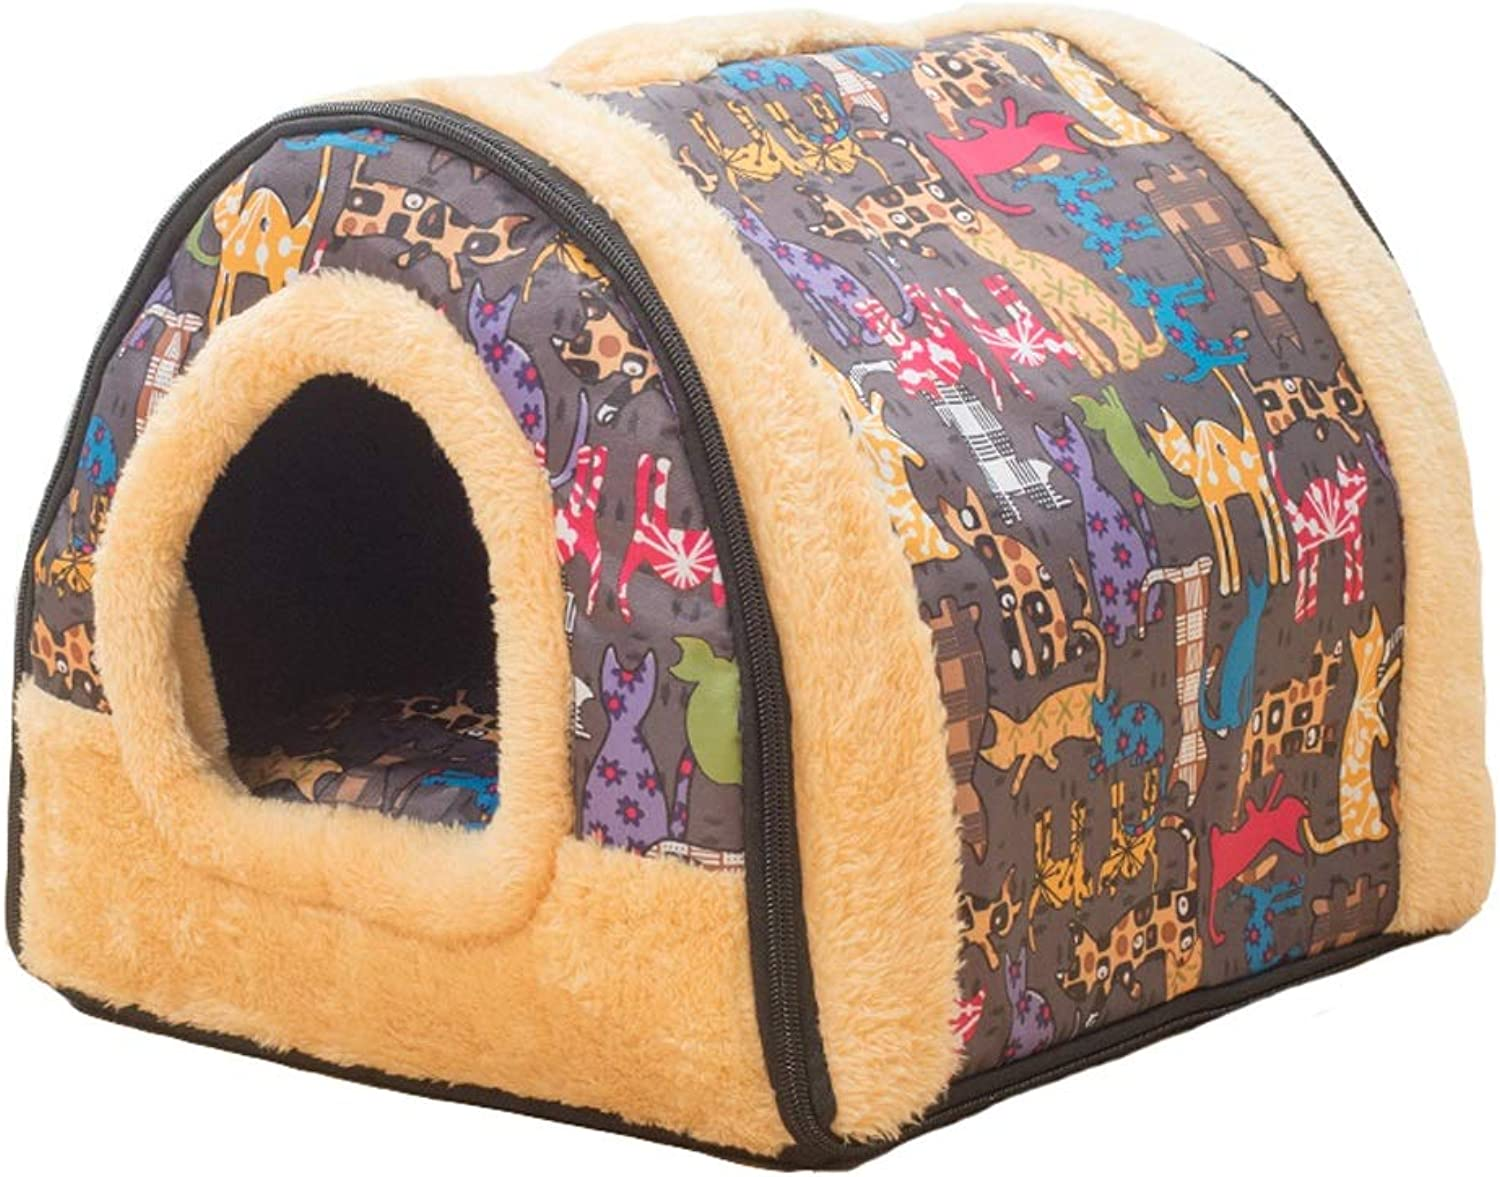 Kennel, 2 in 1 Dog Houses Small MediumSized Dogs Washable Dog Beds Cat Litter Yurt Winter Warm Pet Supplies (color   A, Size   L)